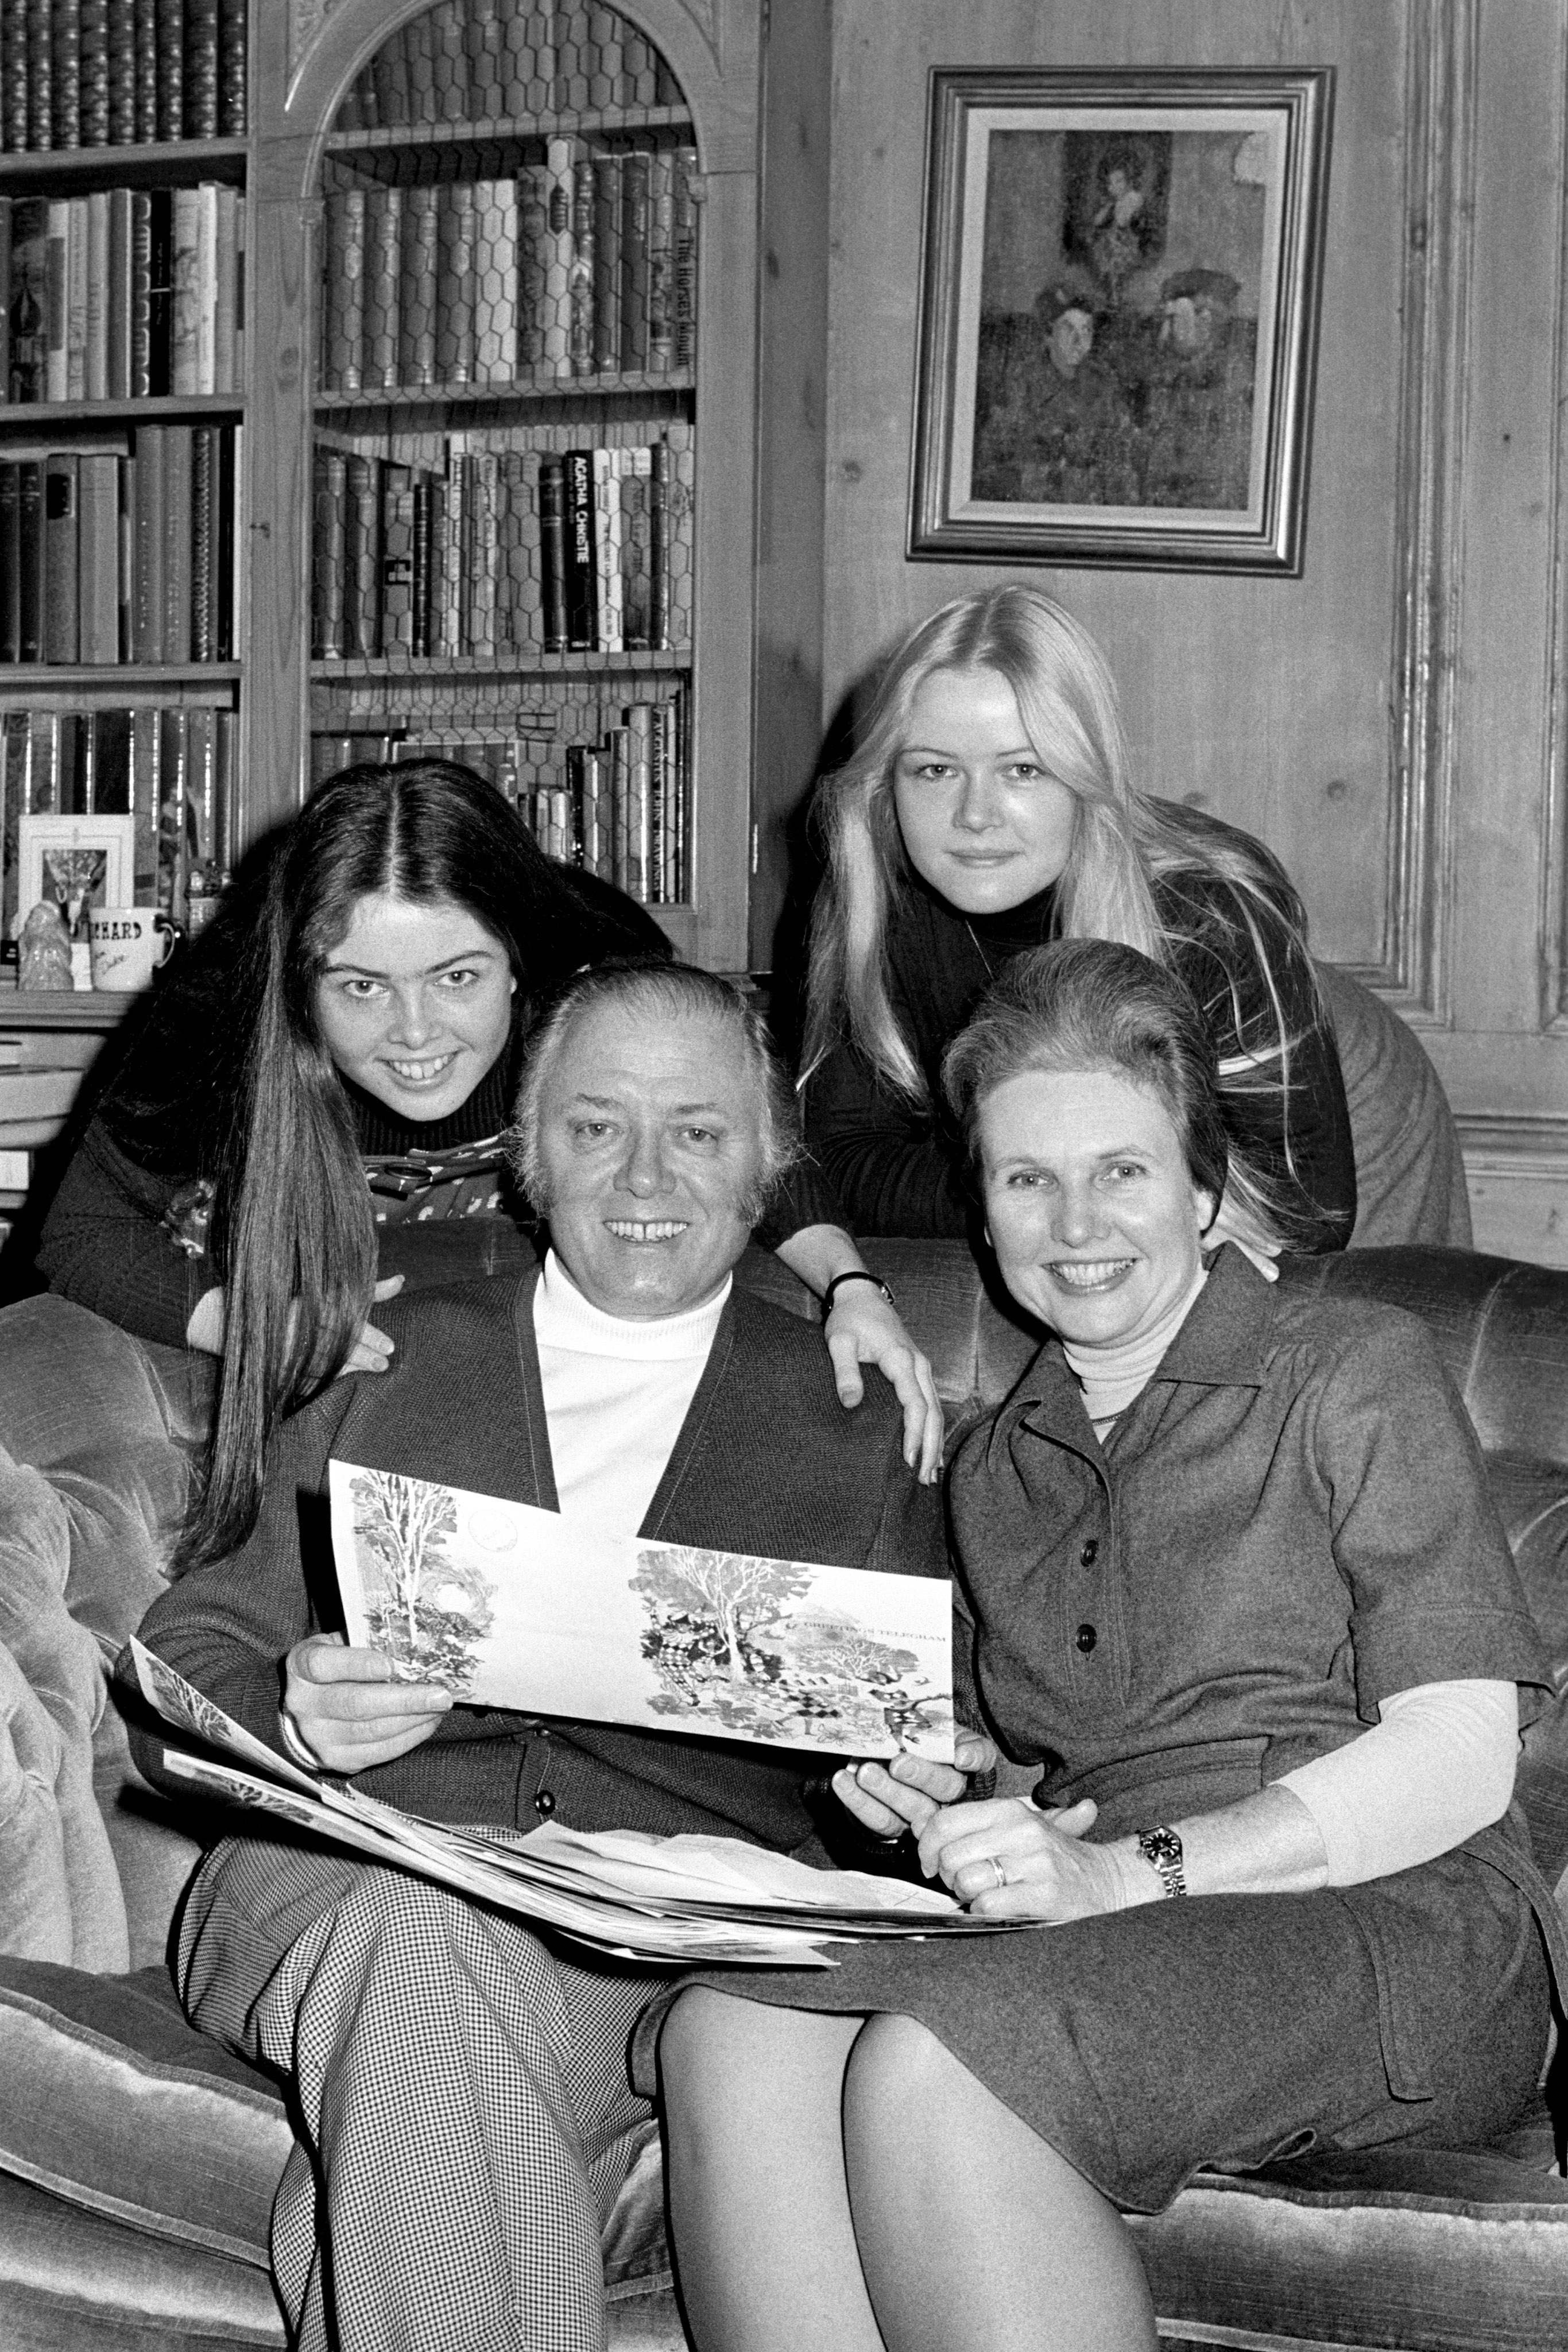 Richard Attenborough, 52, the film worlds newest knight, reads the message of congratulation today in the drawing room of his Richmond Green home. With him are his wife Sheila and daughters Charlotte, 16 (left), and Jane, 20. 1976.